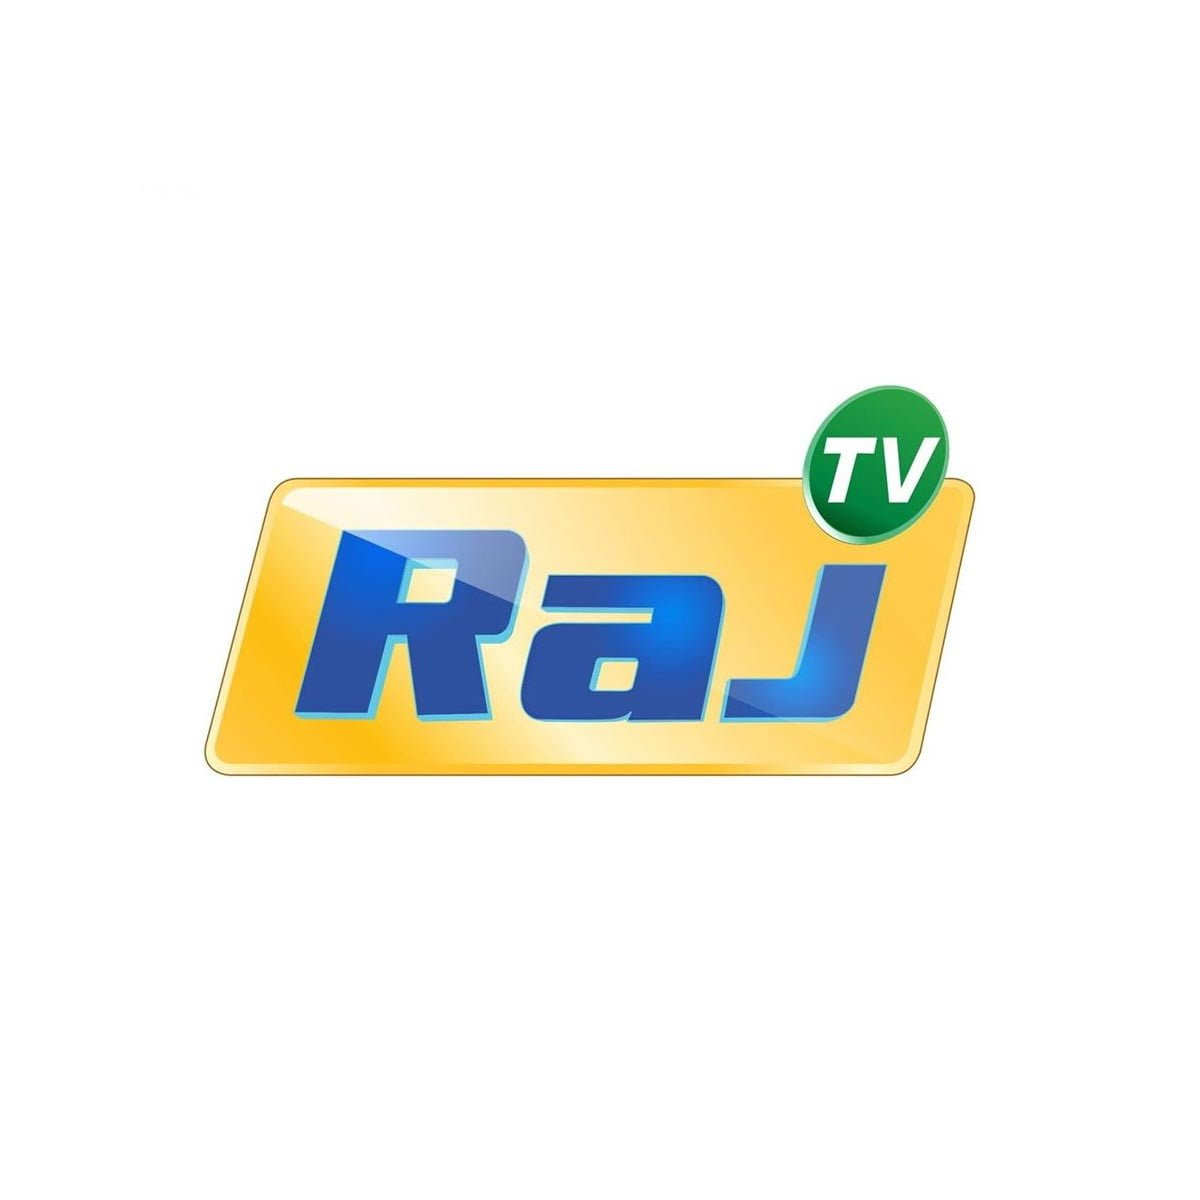 TWO RAJ TV PROMOTER INCREASE THEIR EQUITY SHAREHOLDING